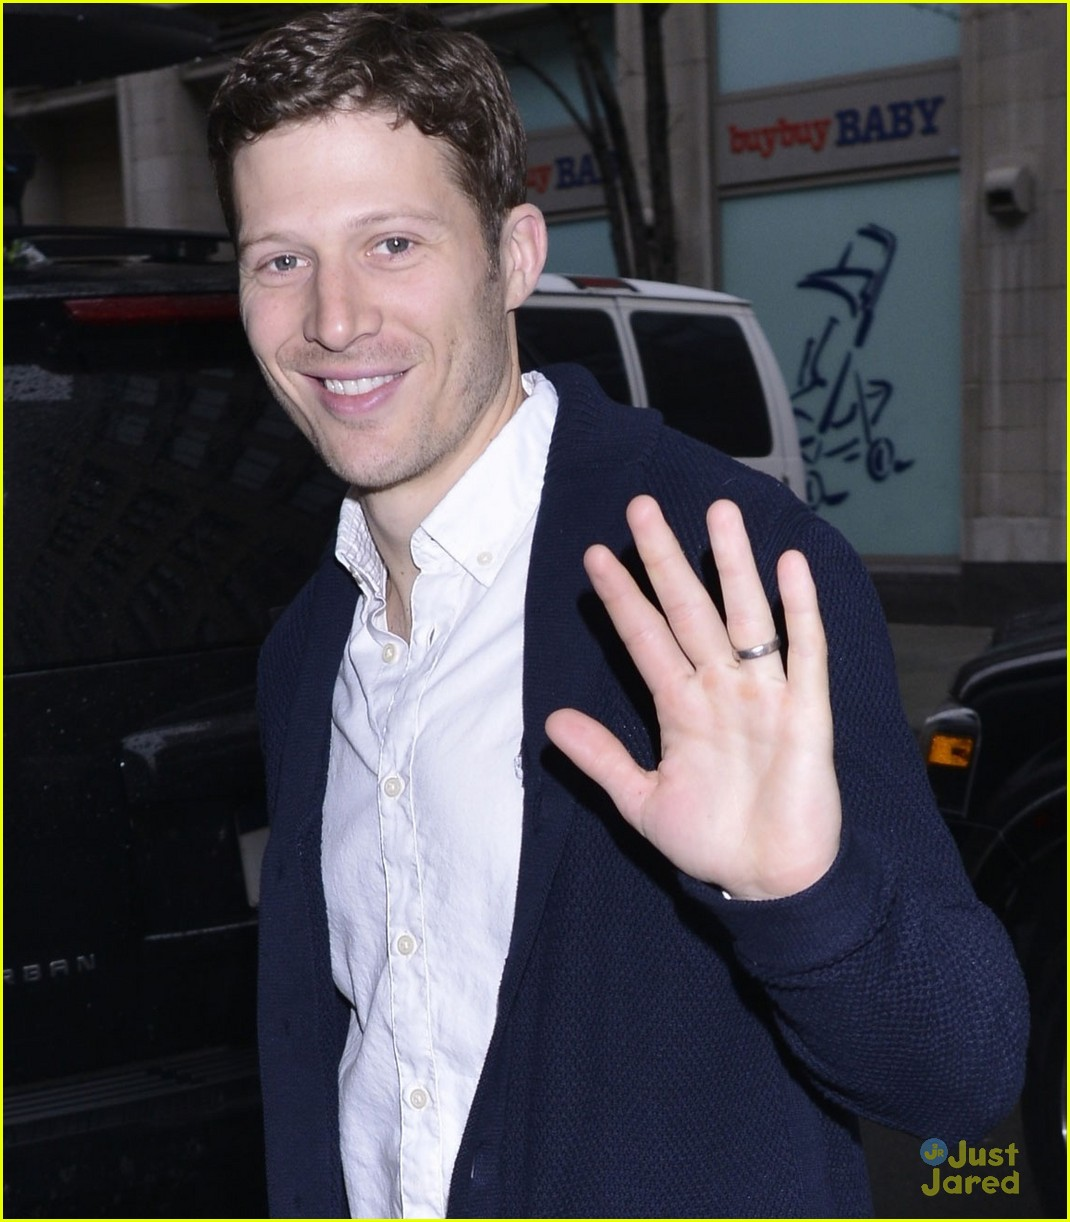 zach gilford net worthzach gilford instagram, zach gilford and aimee teegarden, zach gilford, zach gilford wedding, zach gilford net worth, zach gilford twitter, zach gilford rugby, zach gilford imdb, zach gilford height, zach gilford grey's anatomy, zach gilford wiki, zach gilford 2015, zach gilford actor, zach gilford wife, zach gilford and kiele sanchez, zach gilford interview, zach gilford shirtless, zach gilford taylor swift, zach gilford parenthood, zach gilford friday night lights